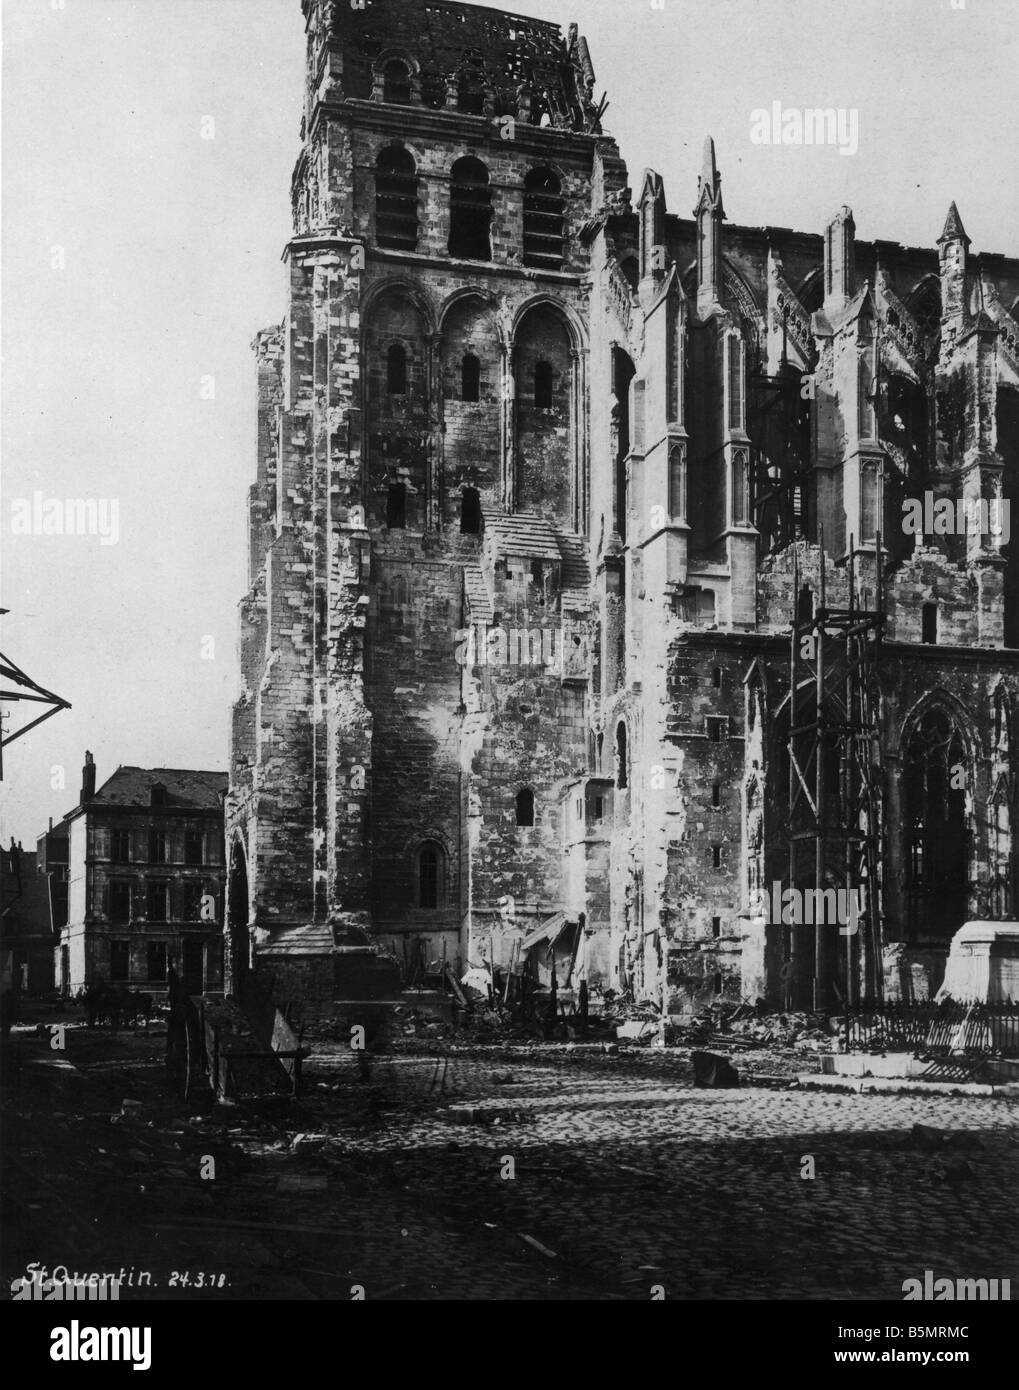 9 1918 3 24 A1 3 Wartorn Church Saint Quentin 1918 World War 1 Western Front German major offensive March July 1918 - Stock Image